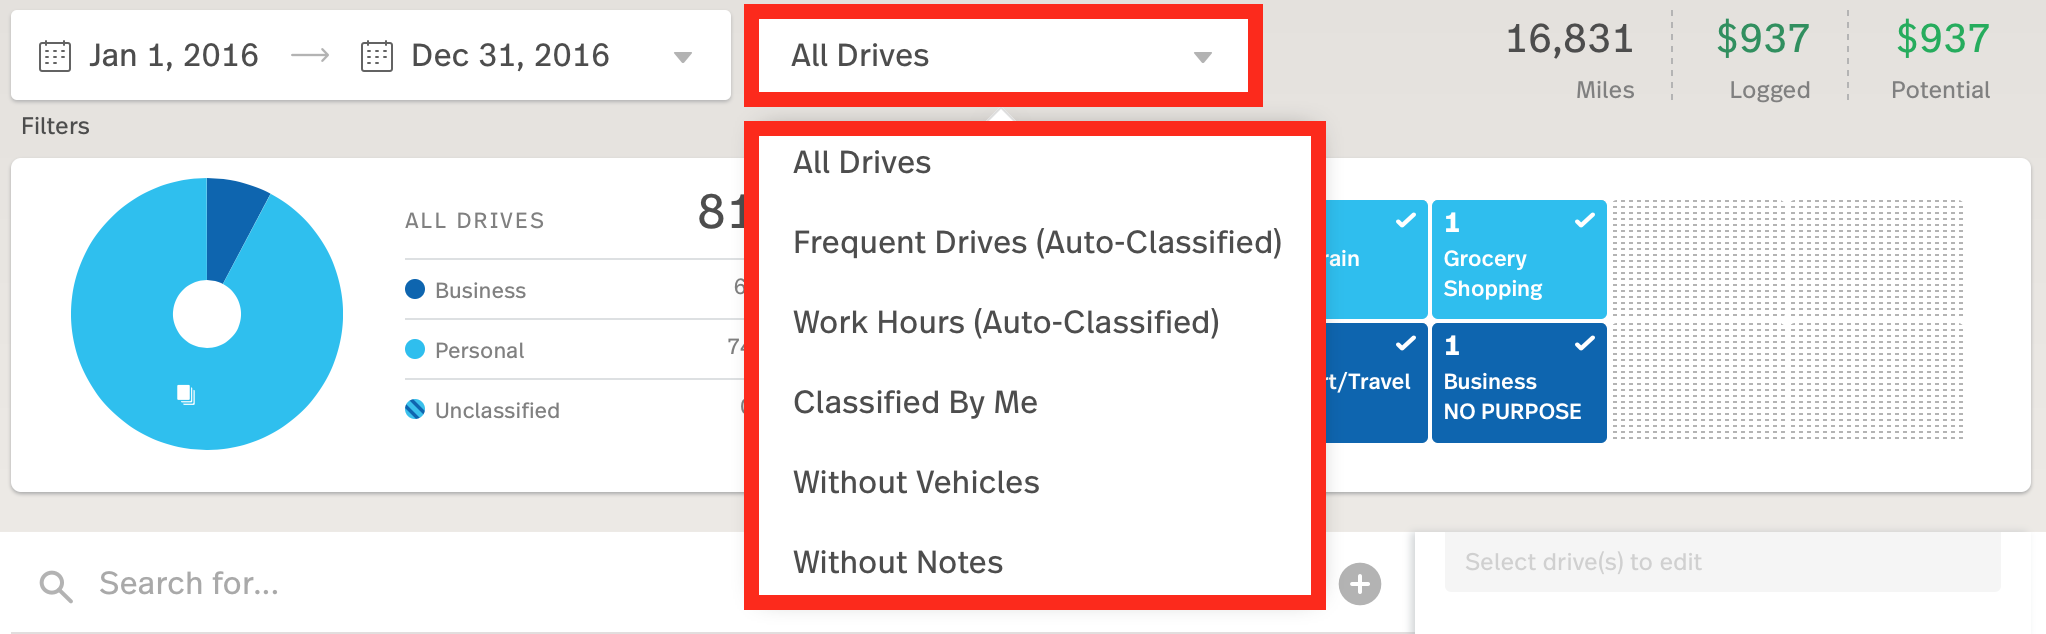 This screenshot is highlighting the All Drives filter on the MileIQ web dashboard.